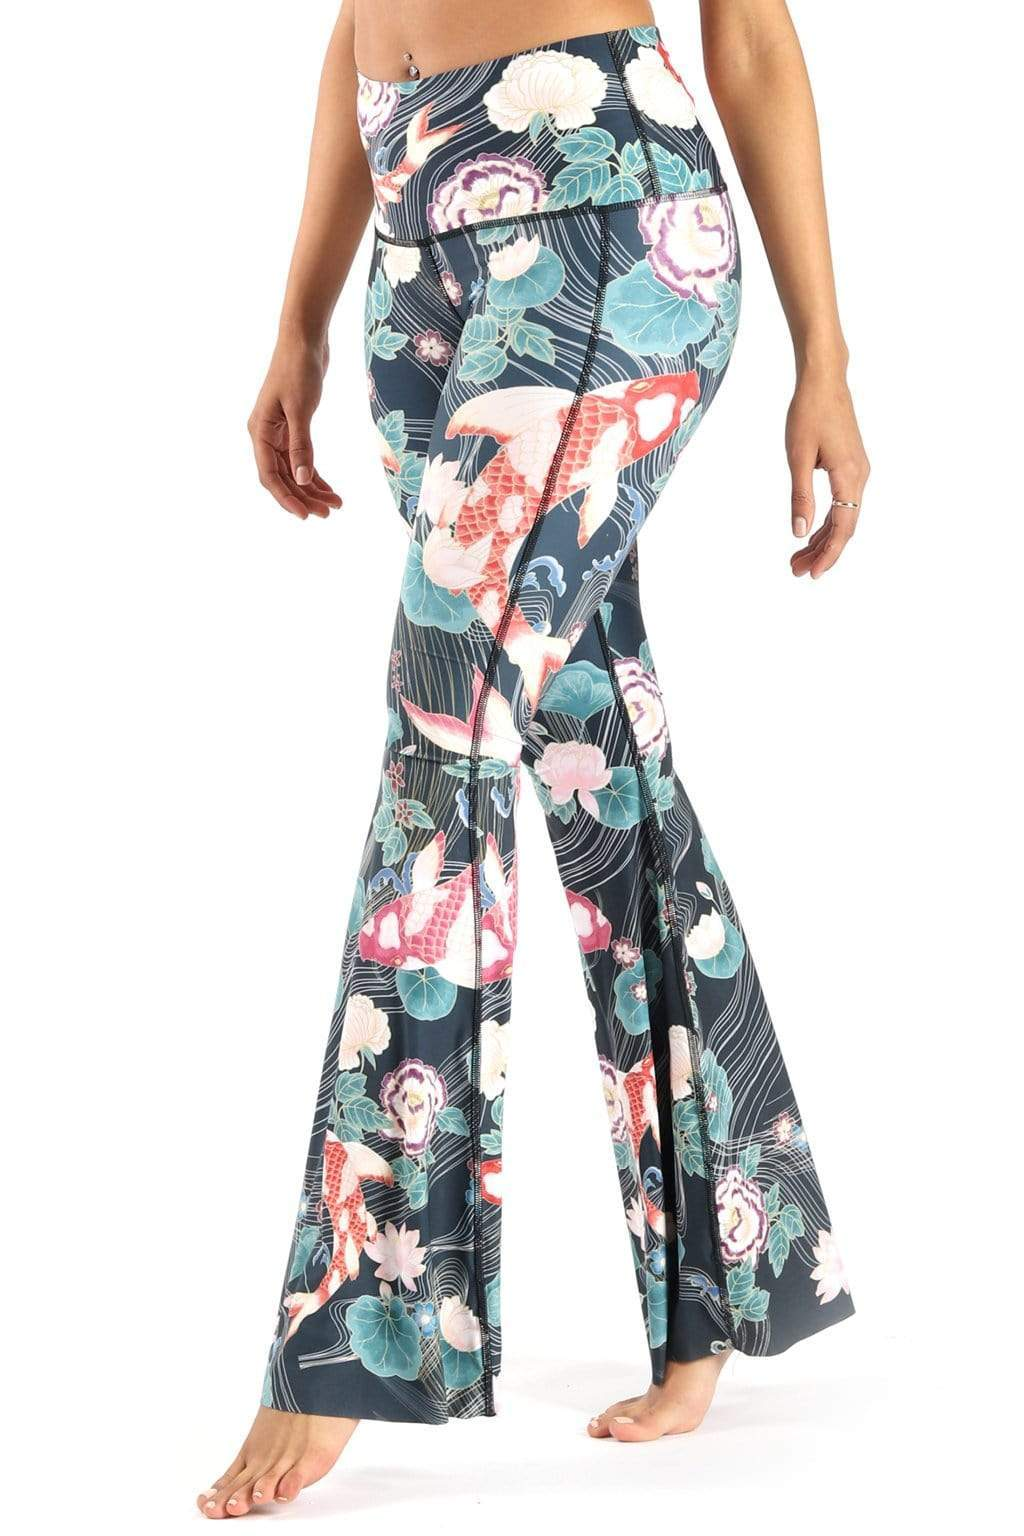 Yoga Democracy Leggings Clever Koi Printed Bell Bottoms